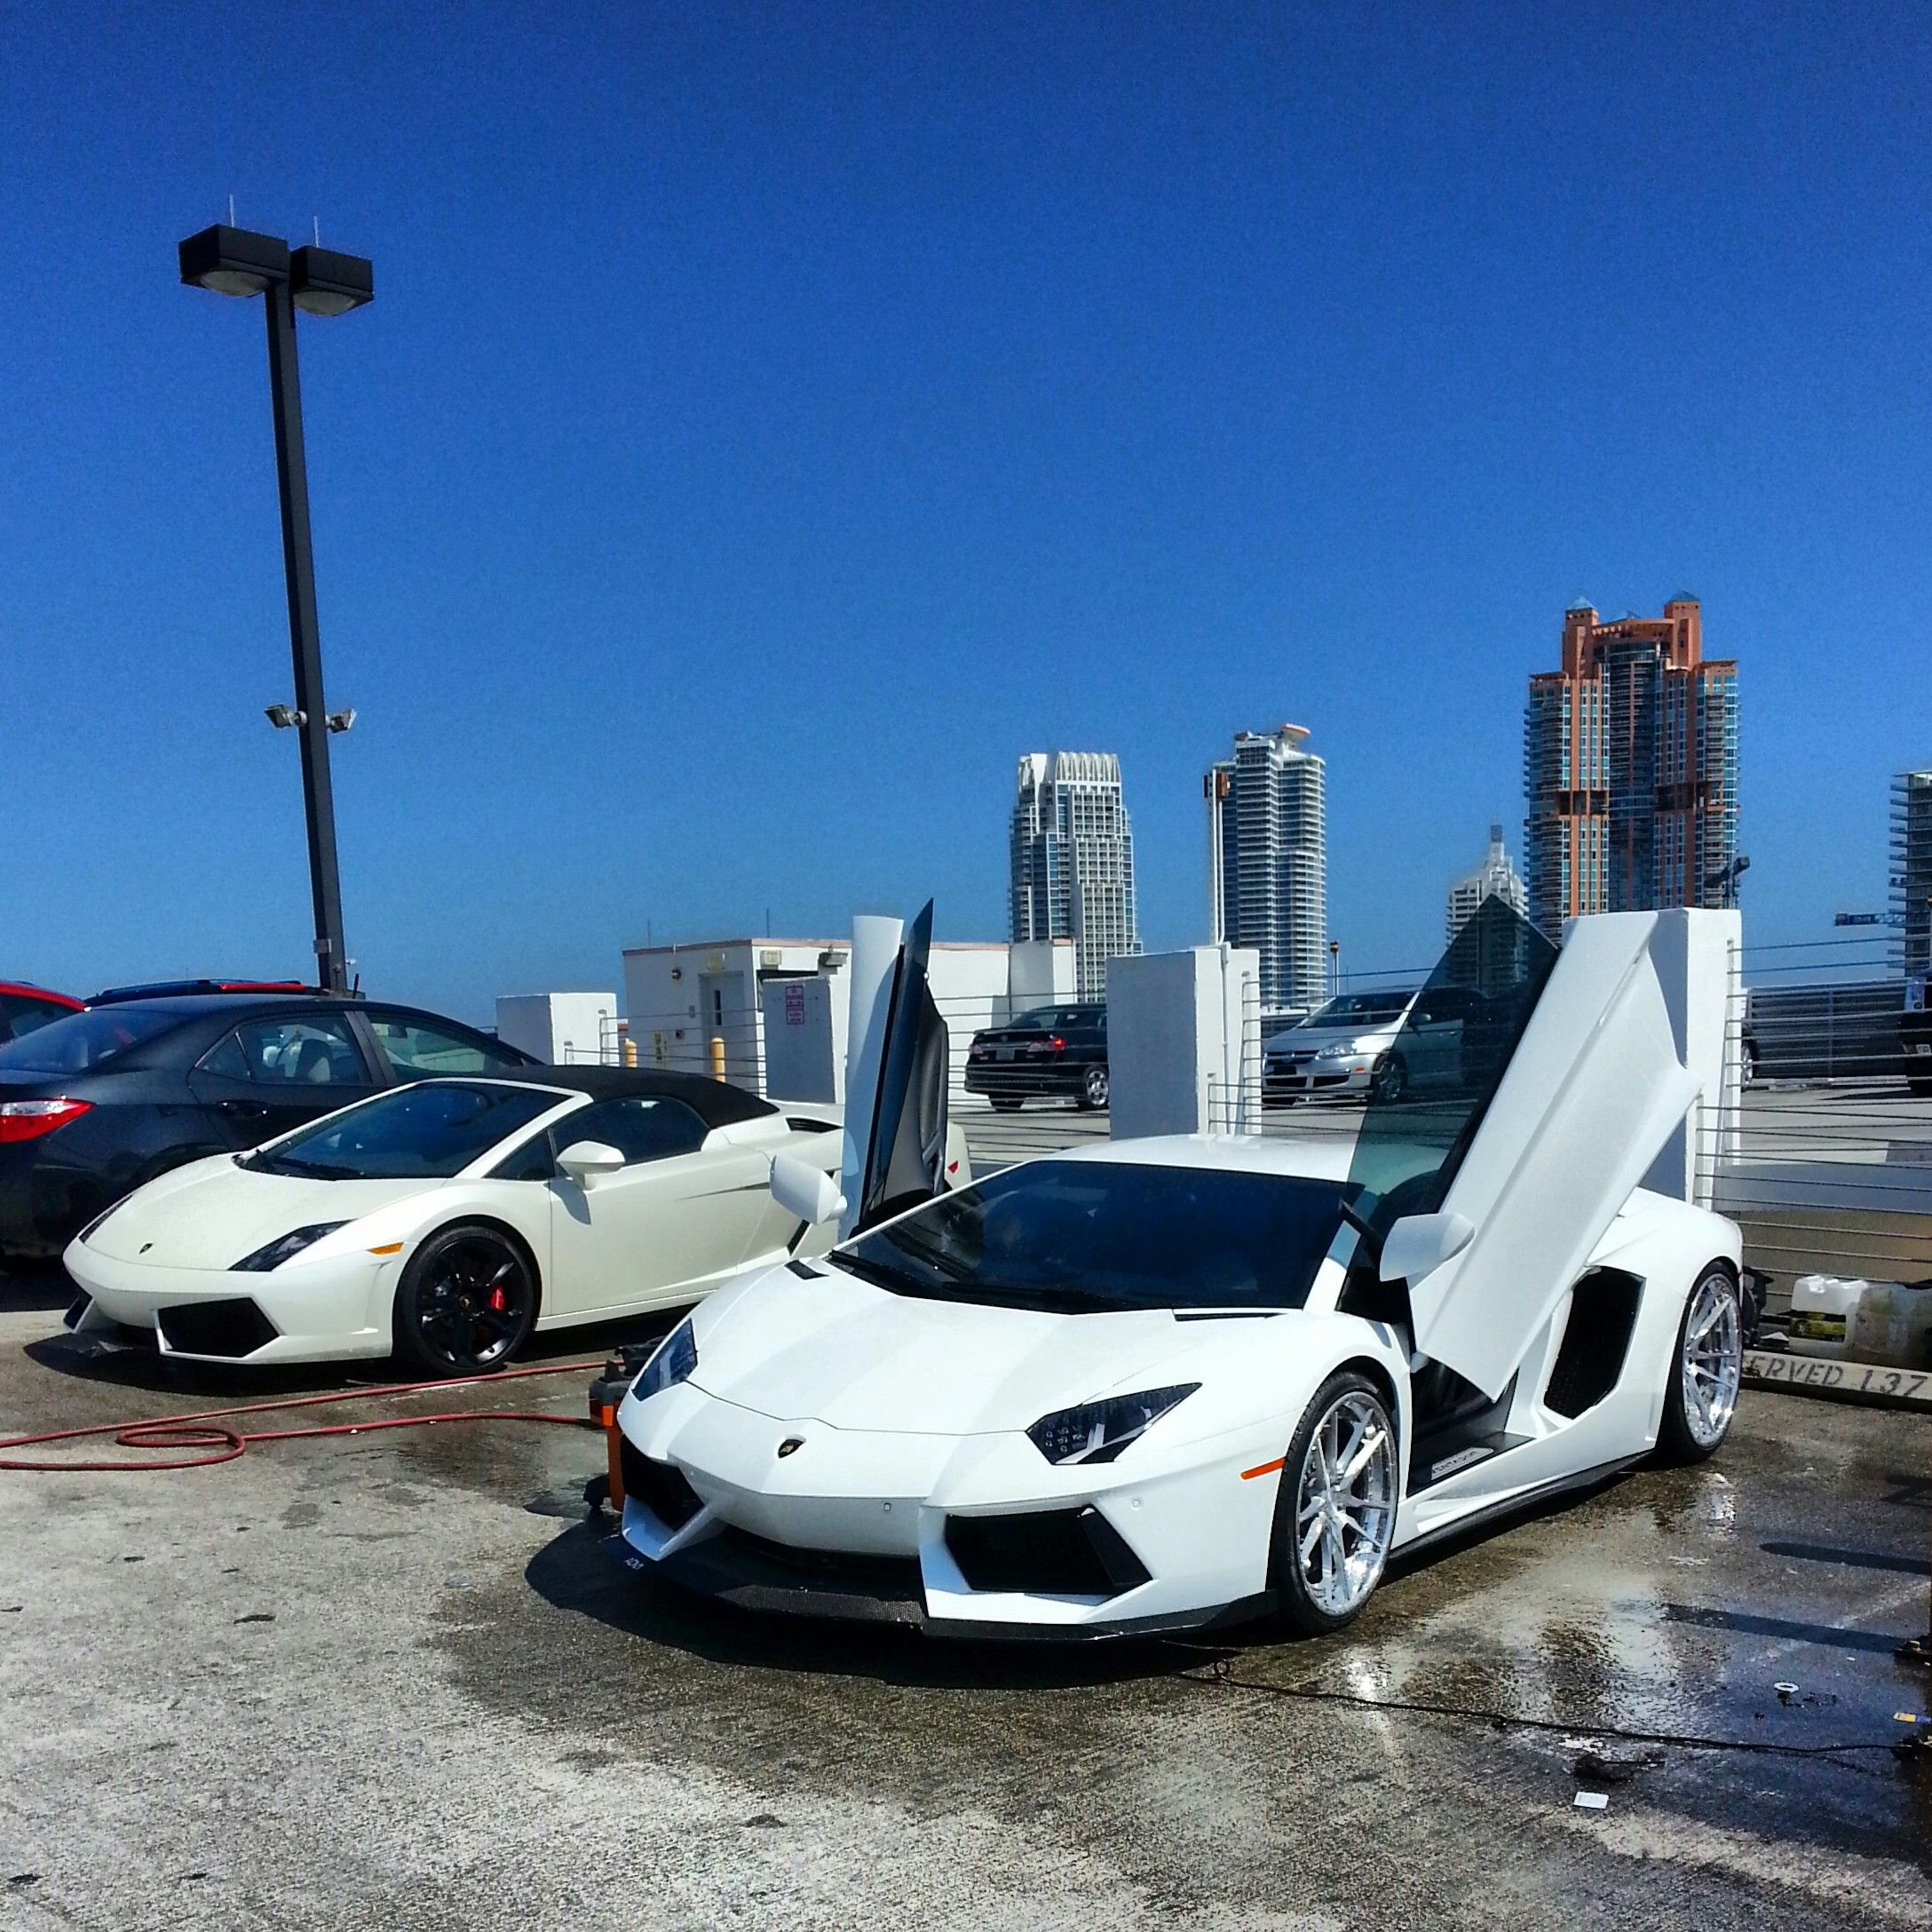 prime angle royalty price huracan rental promo front red car isolated cars lamborghini exterior in luxury i houston rent business exotic release a date miami